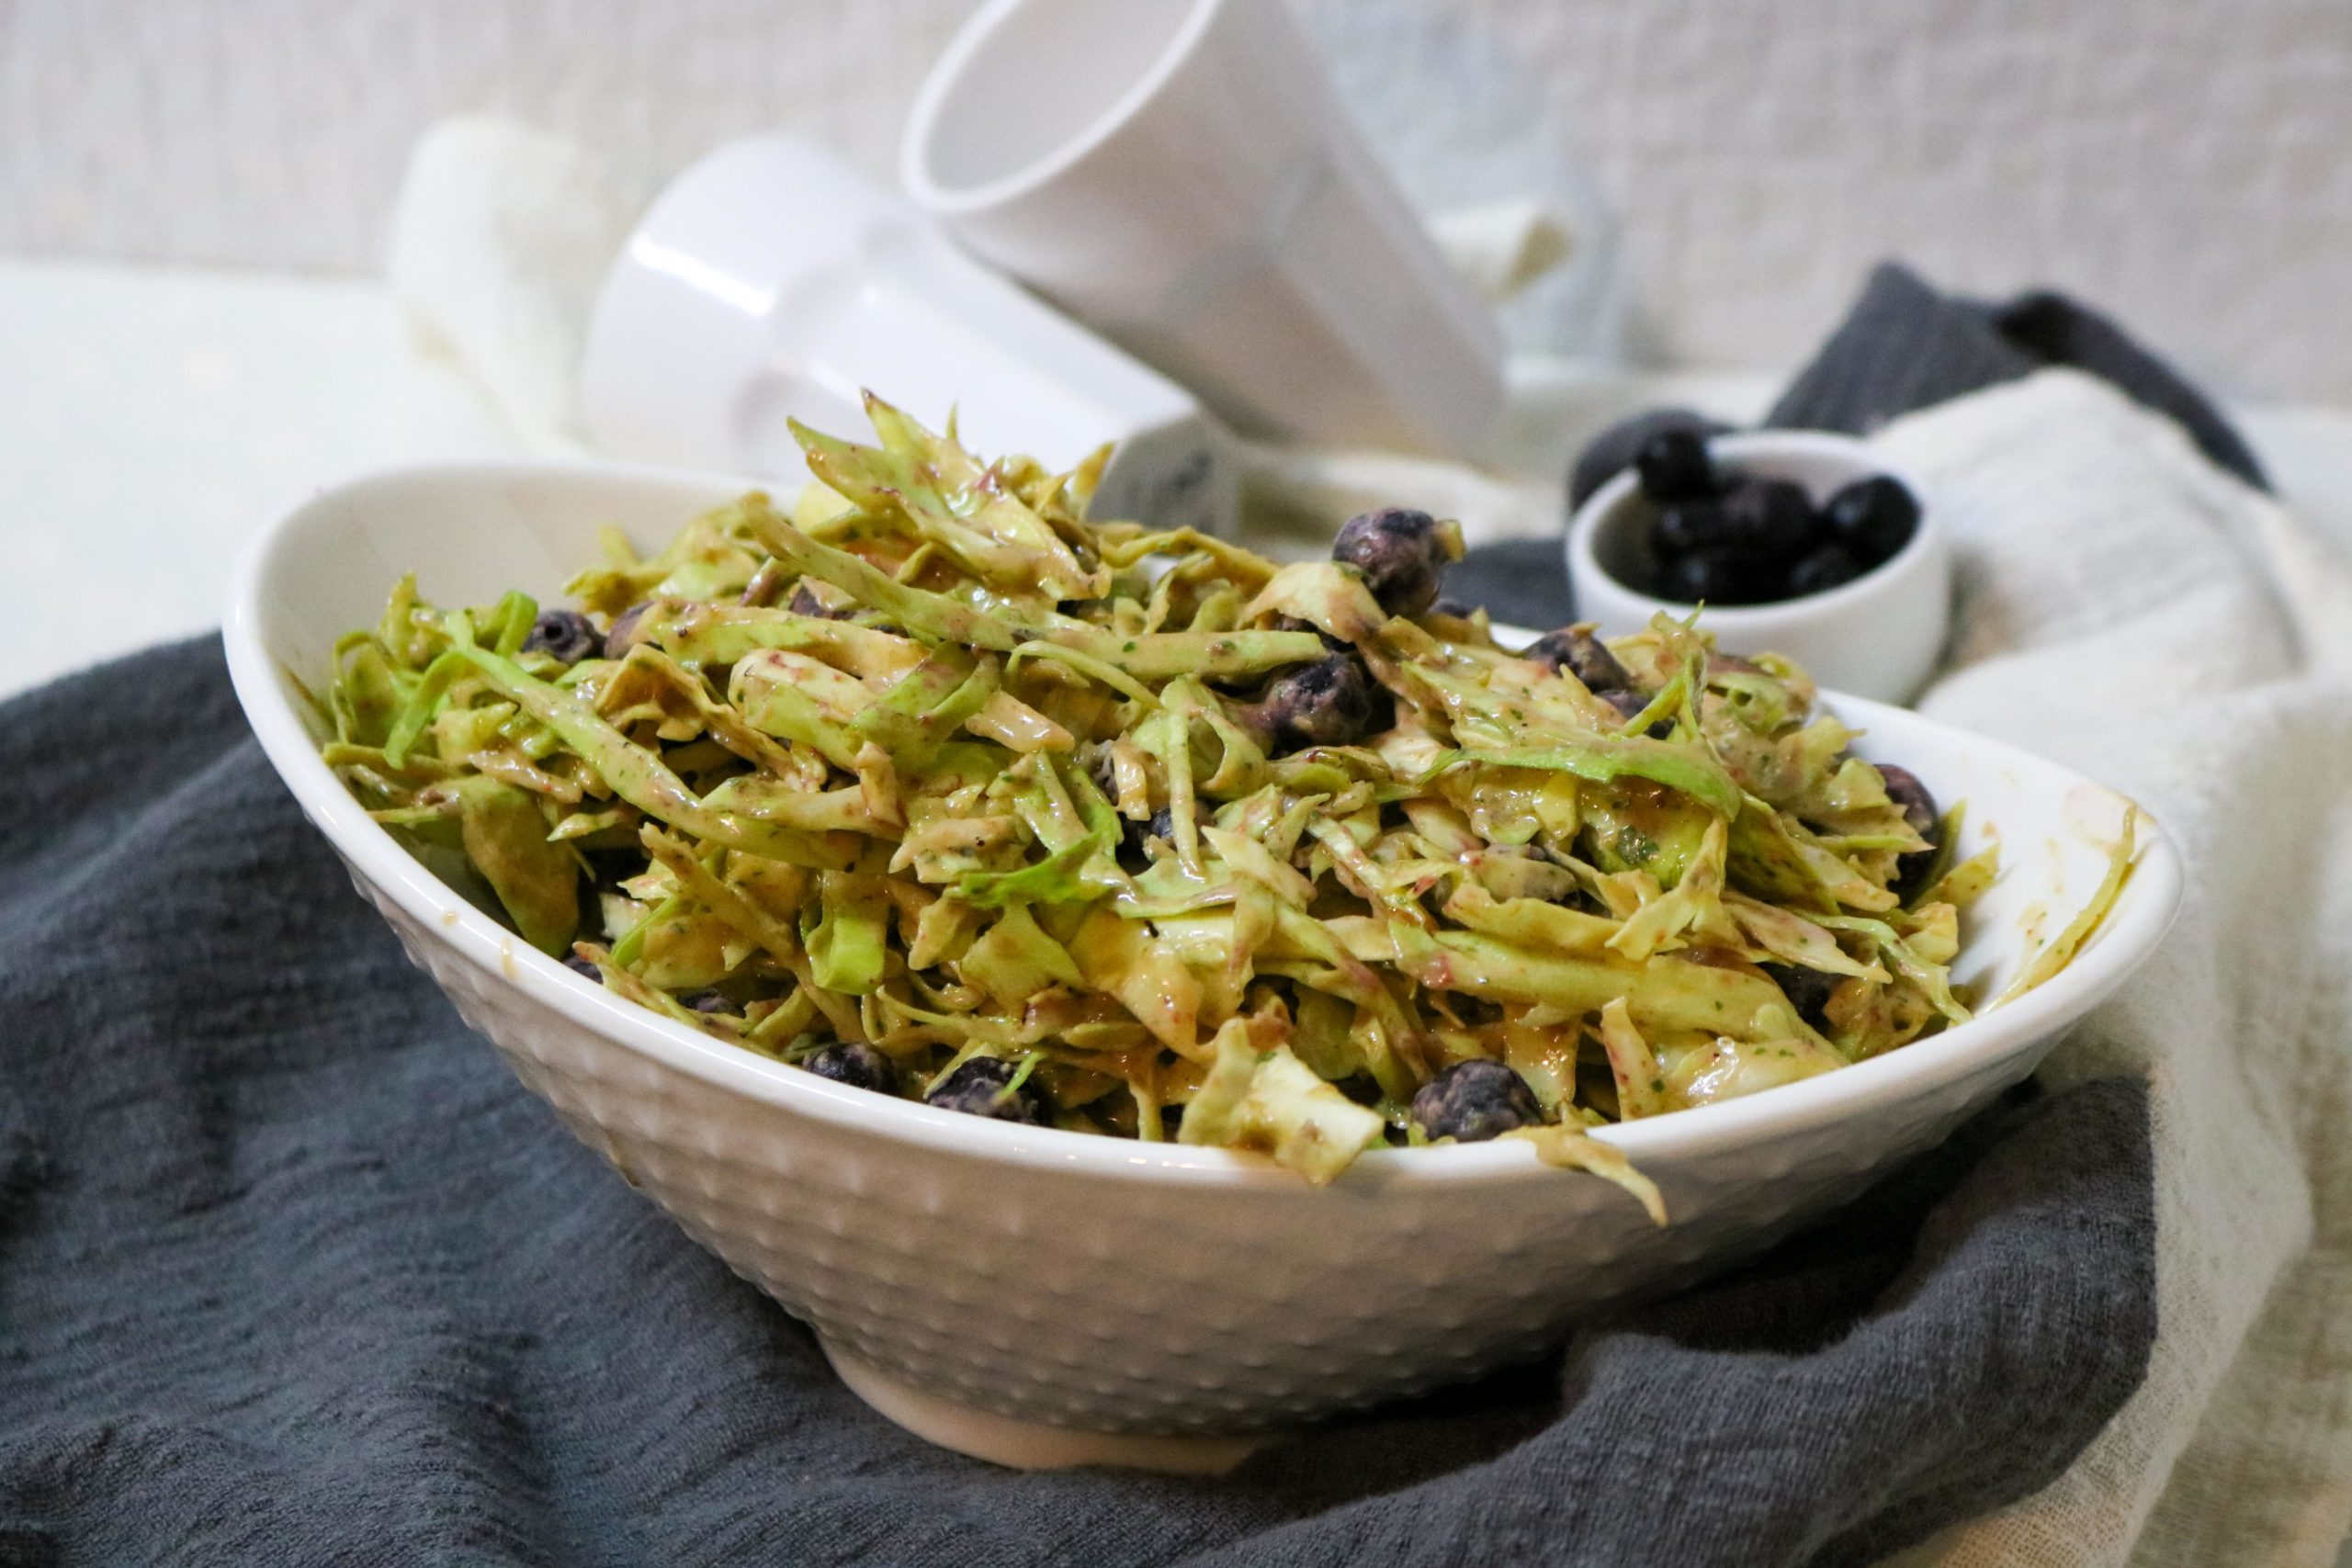 Blueberry Chipotle Coleslaw Recipe